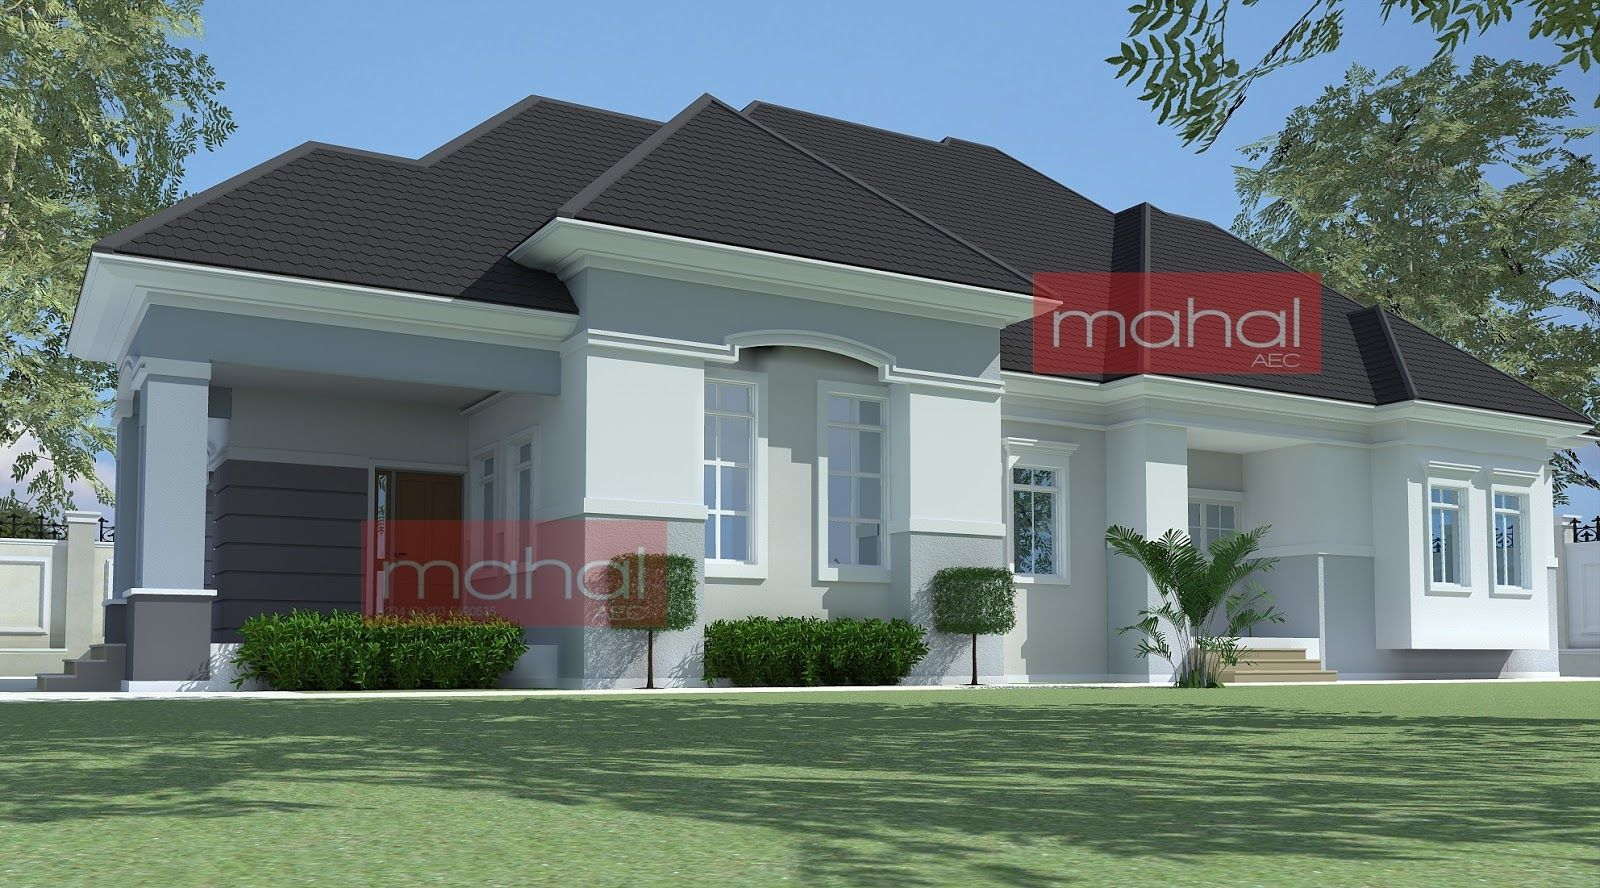 4 Bedroom Bungalow Plan In Nigeria 4 Bedroom Bungalow House Plans Nigerian Design Lrg 41ac73369083f3 Bungalow House Design Modern Roof Design House Roof Design